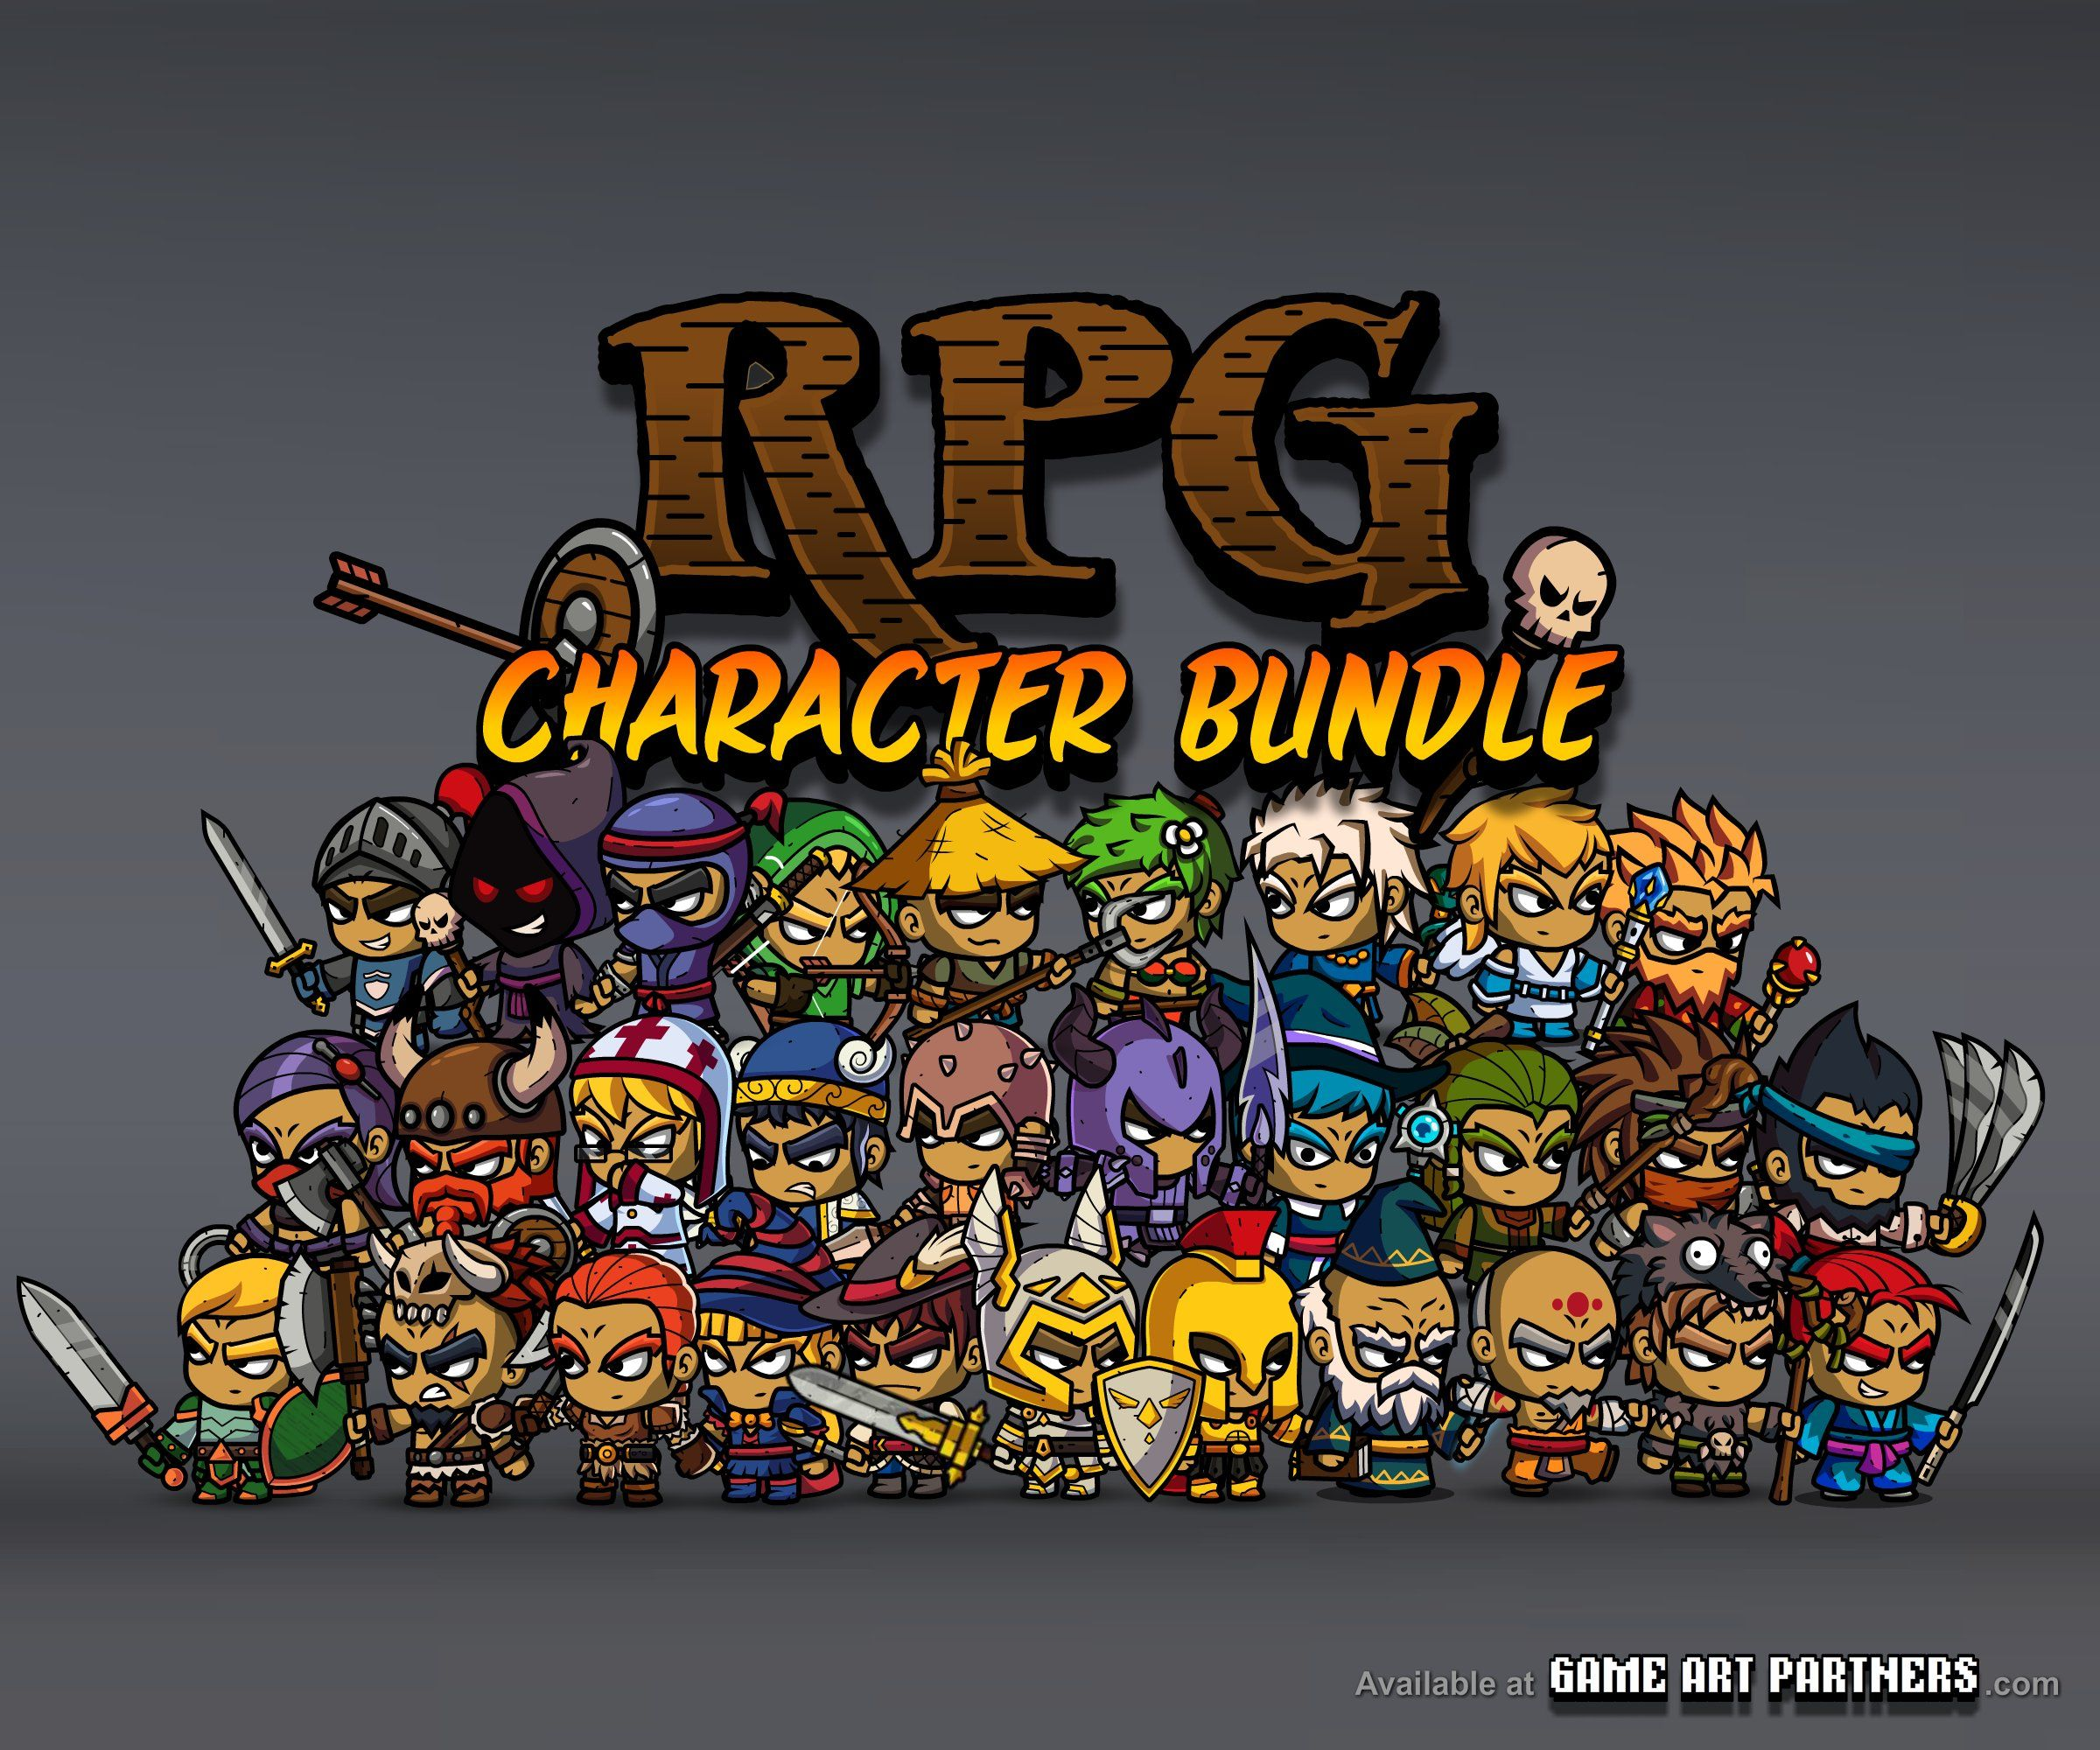 Royalty Free 2D Game /Sprites Art from http://gameartpartners.com ...